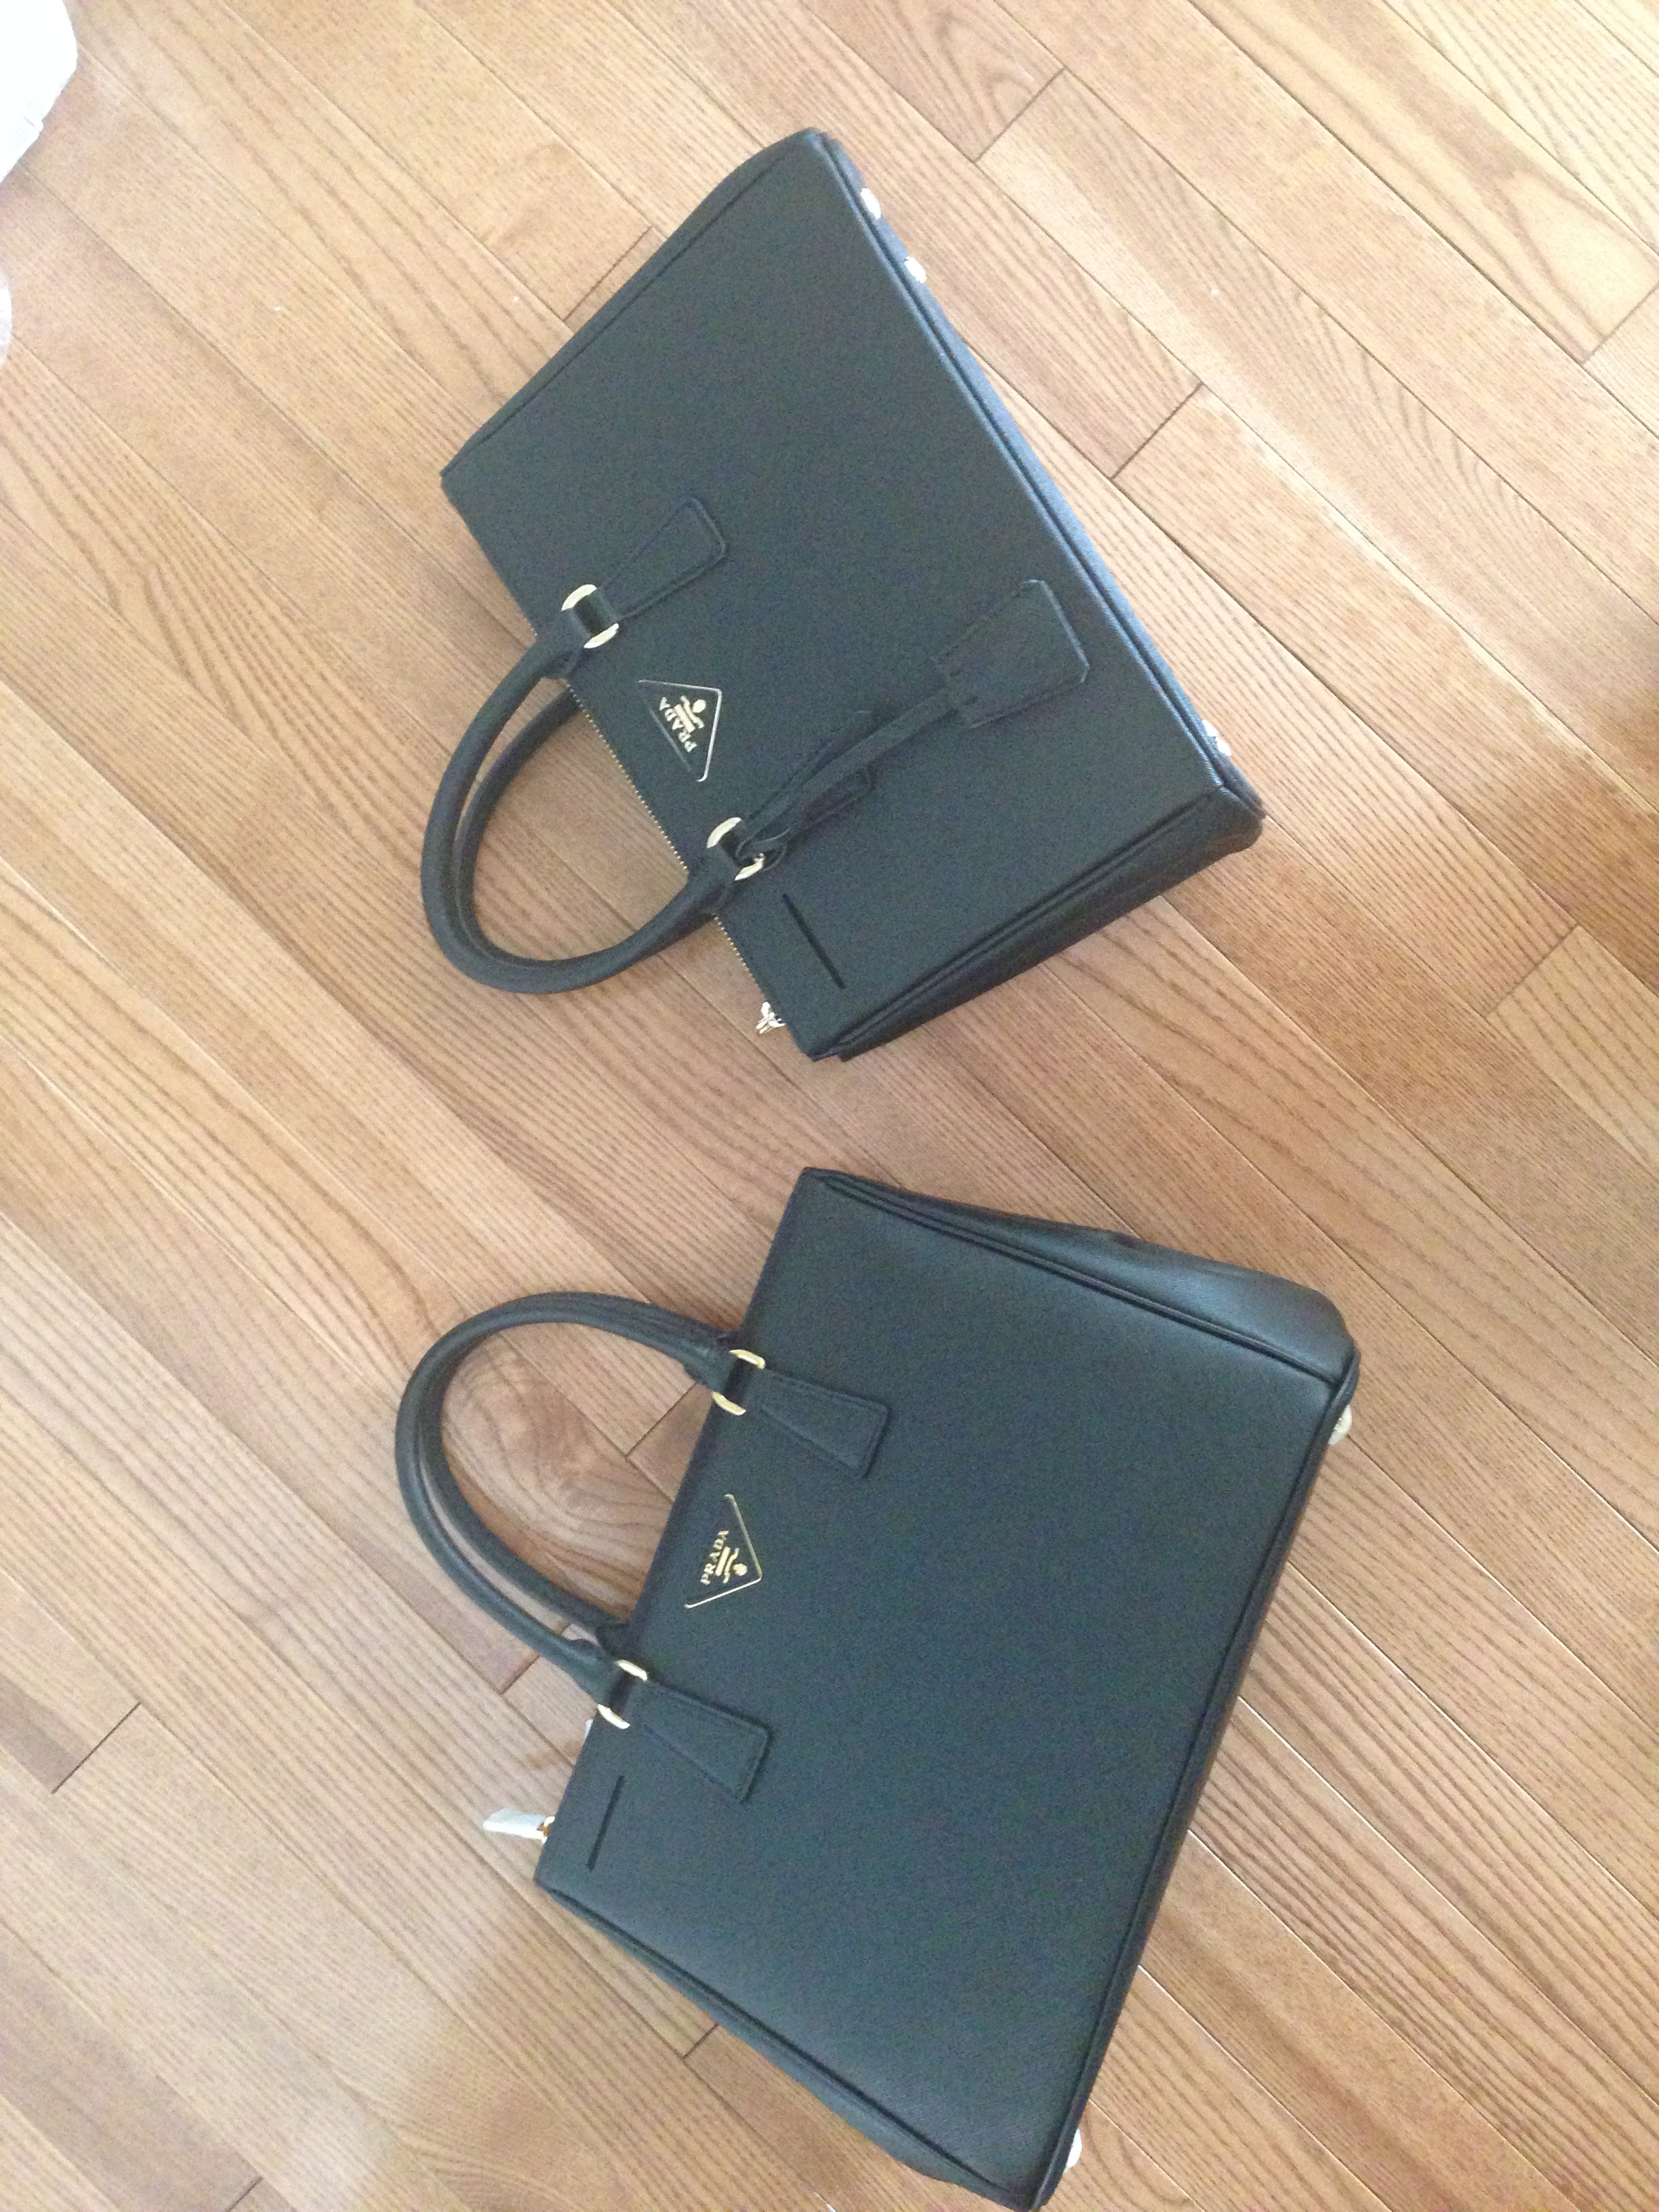 prada grey purse - fake Prada \u2013 Authentic \u0026amp; Replica Bags \u0026amp; Replica Handbags Reviews ...